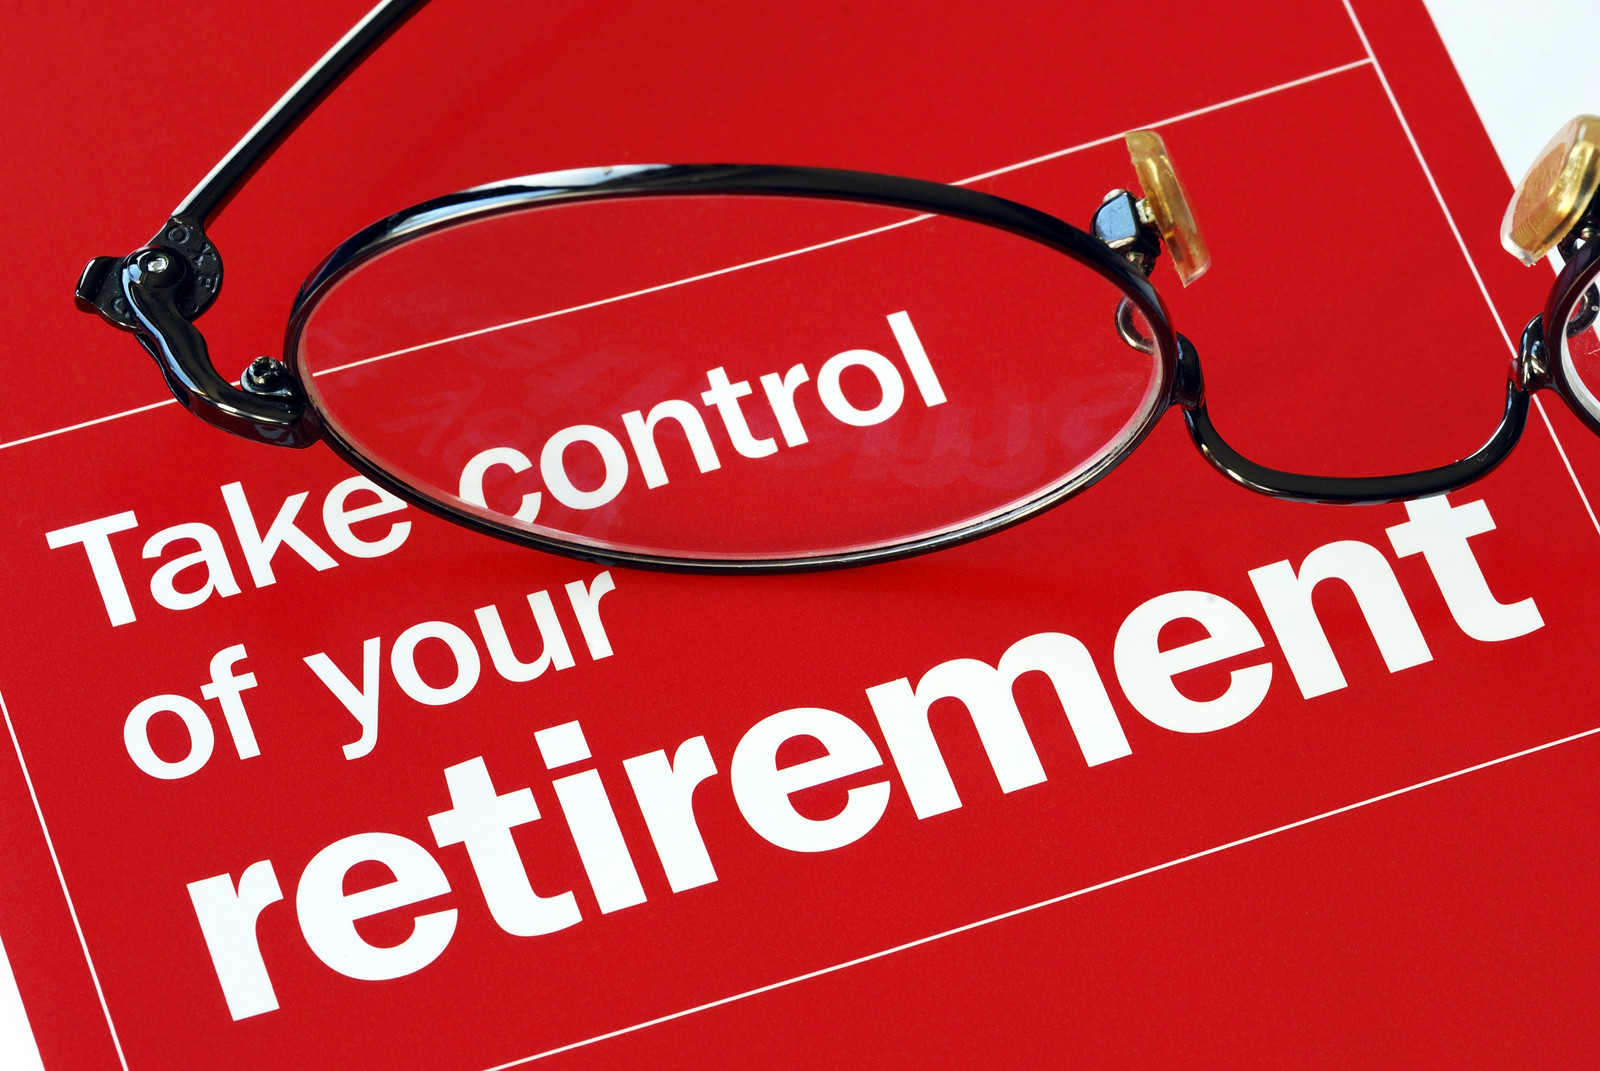 Financial advisors have a problem giving quality retirement advice